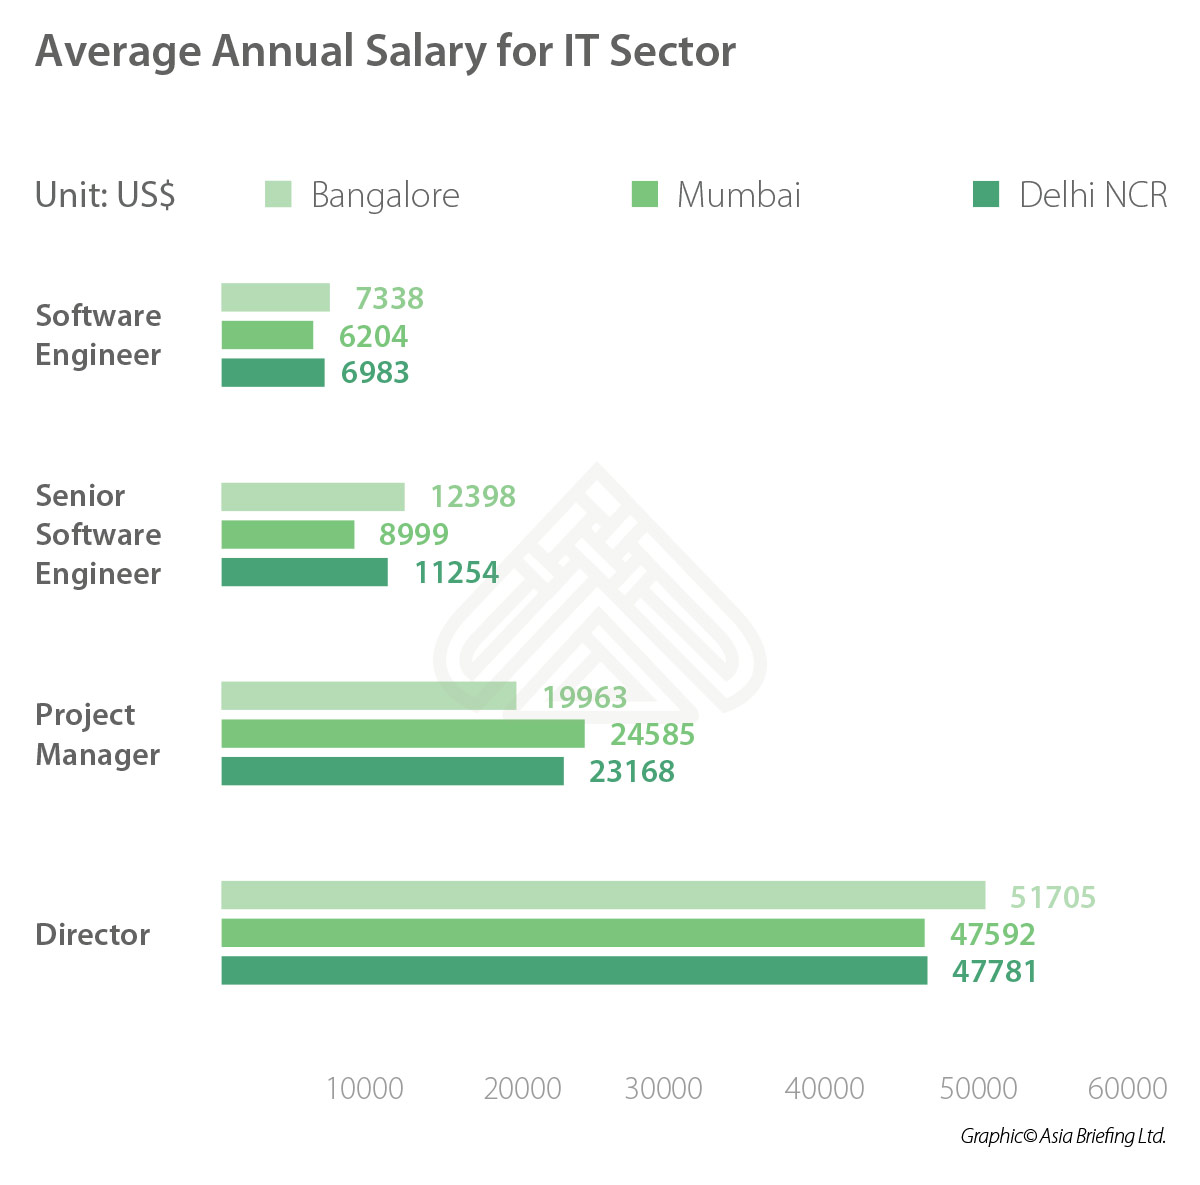 India Briefing - Average Annual salary for IT sector in India